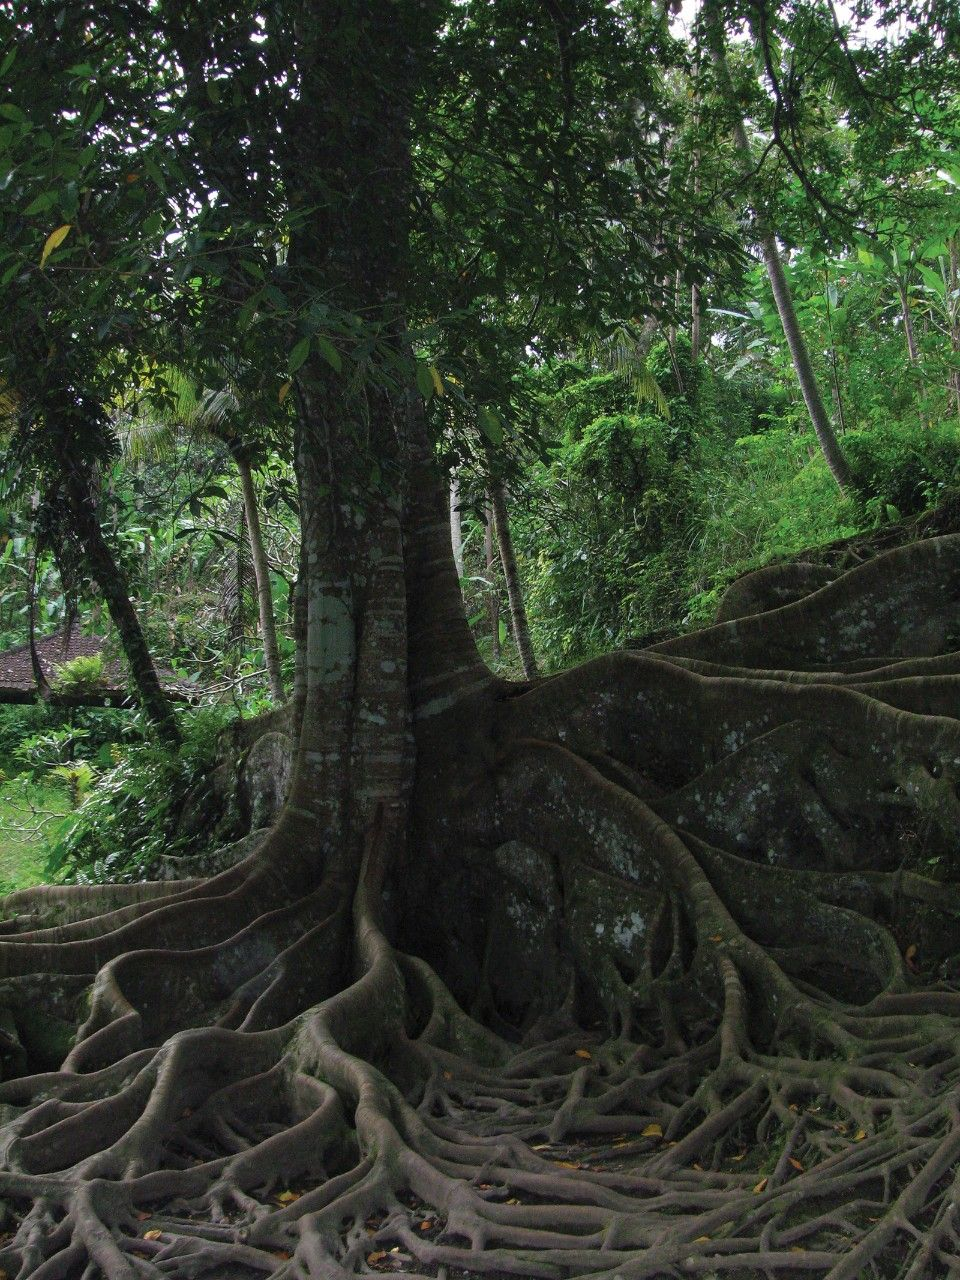 A picture of a tree in Bali, Indonesia.